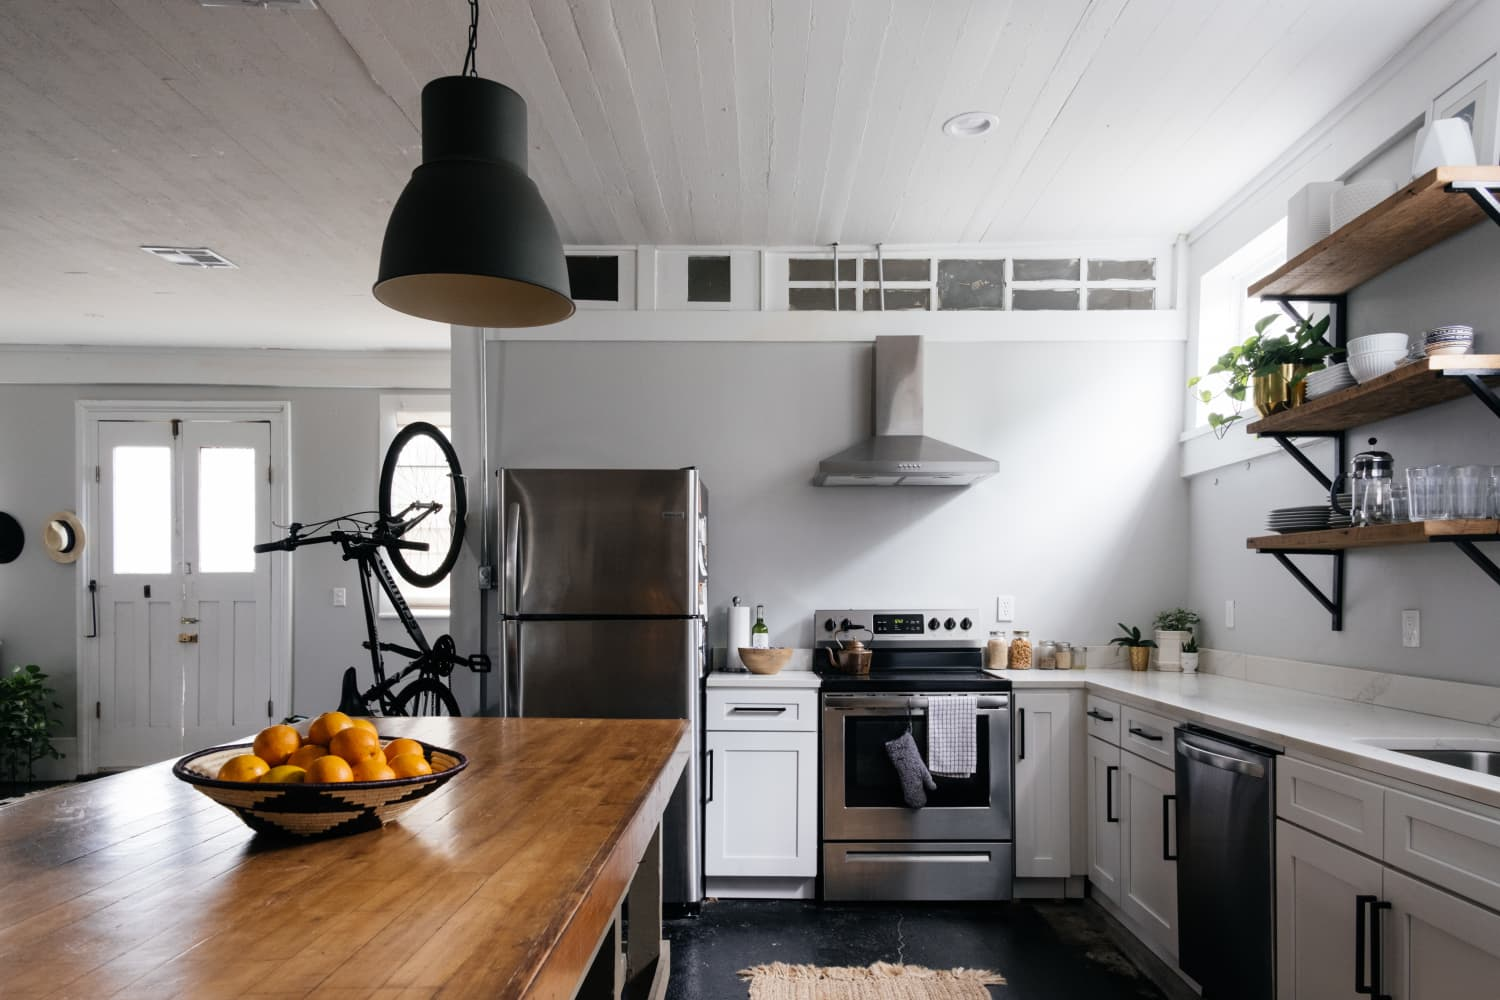 The Best Things You Can Do for Your Kitchen, According to Exterminators